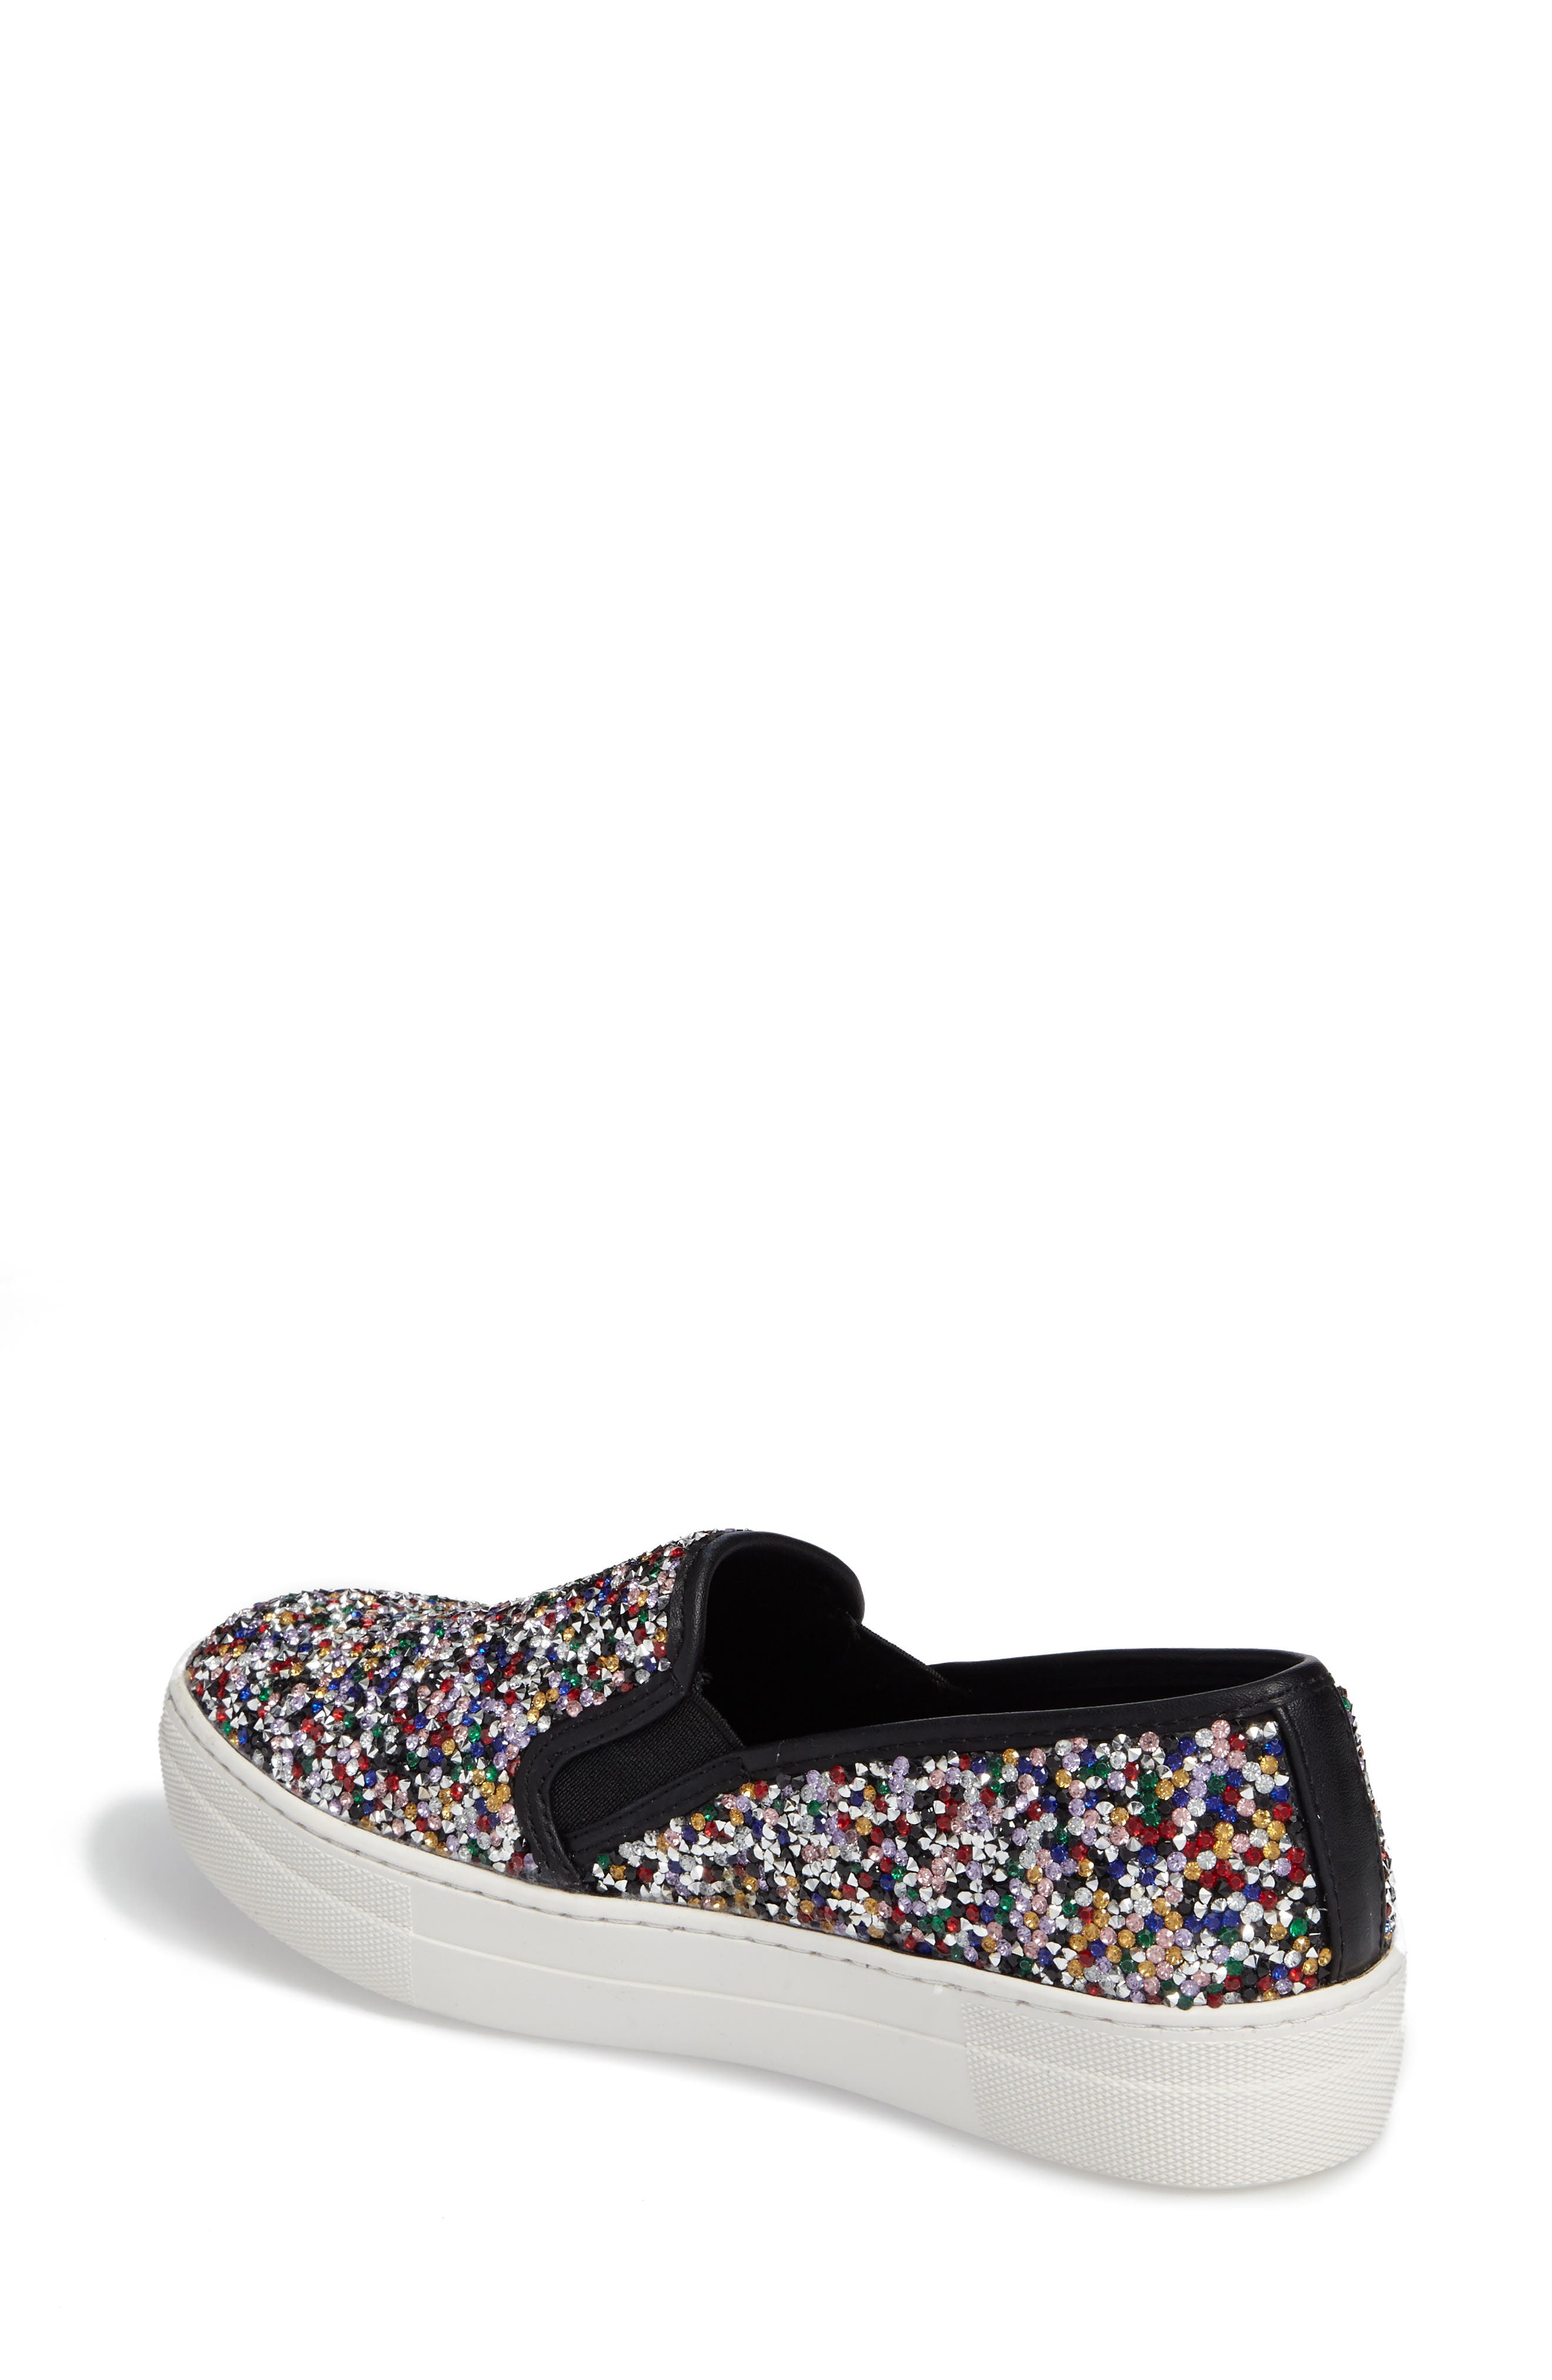 Alternate Image 2  - Steve Madden Gracious Slip-On Sneaker (Women)